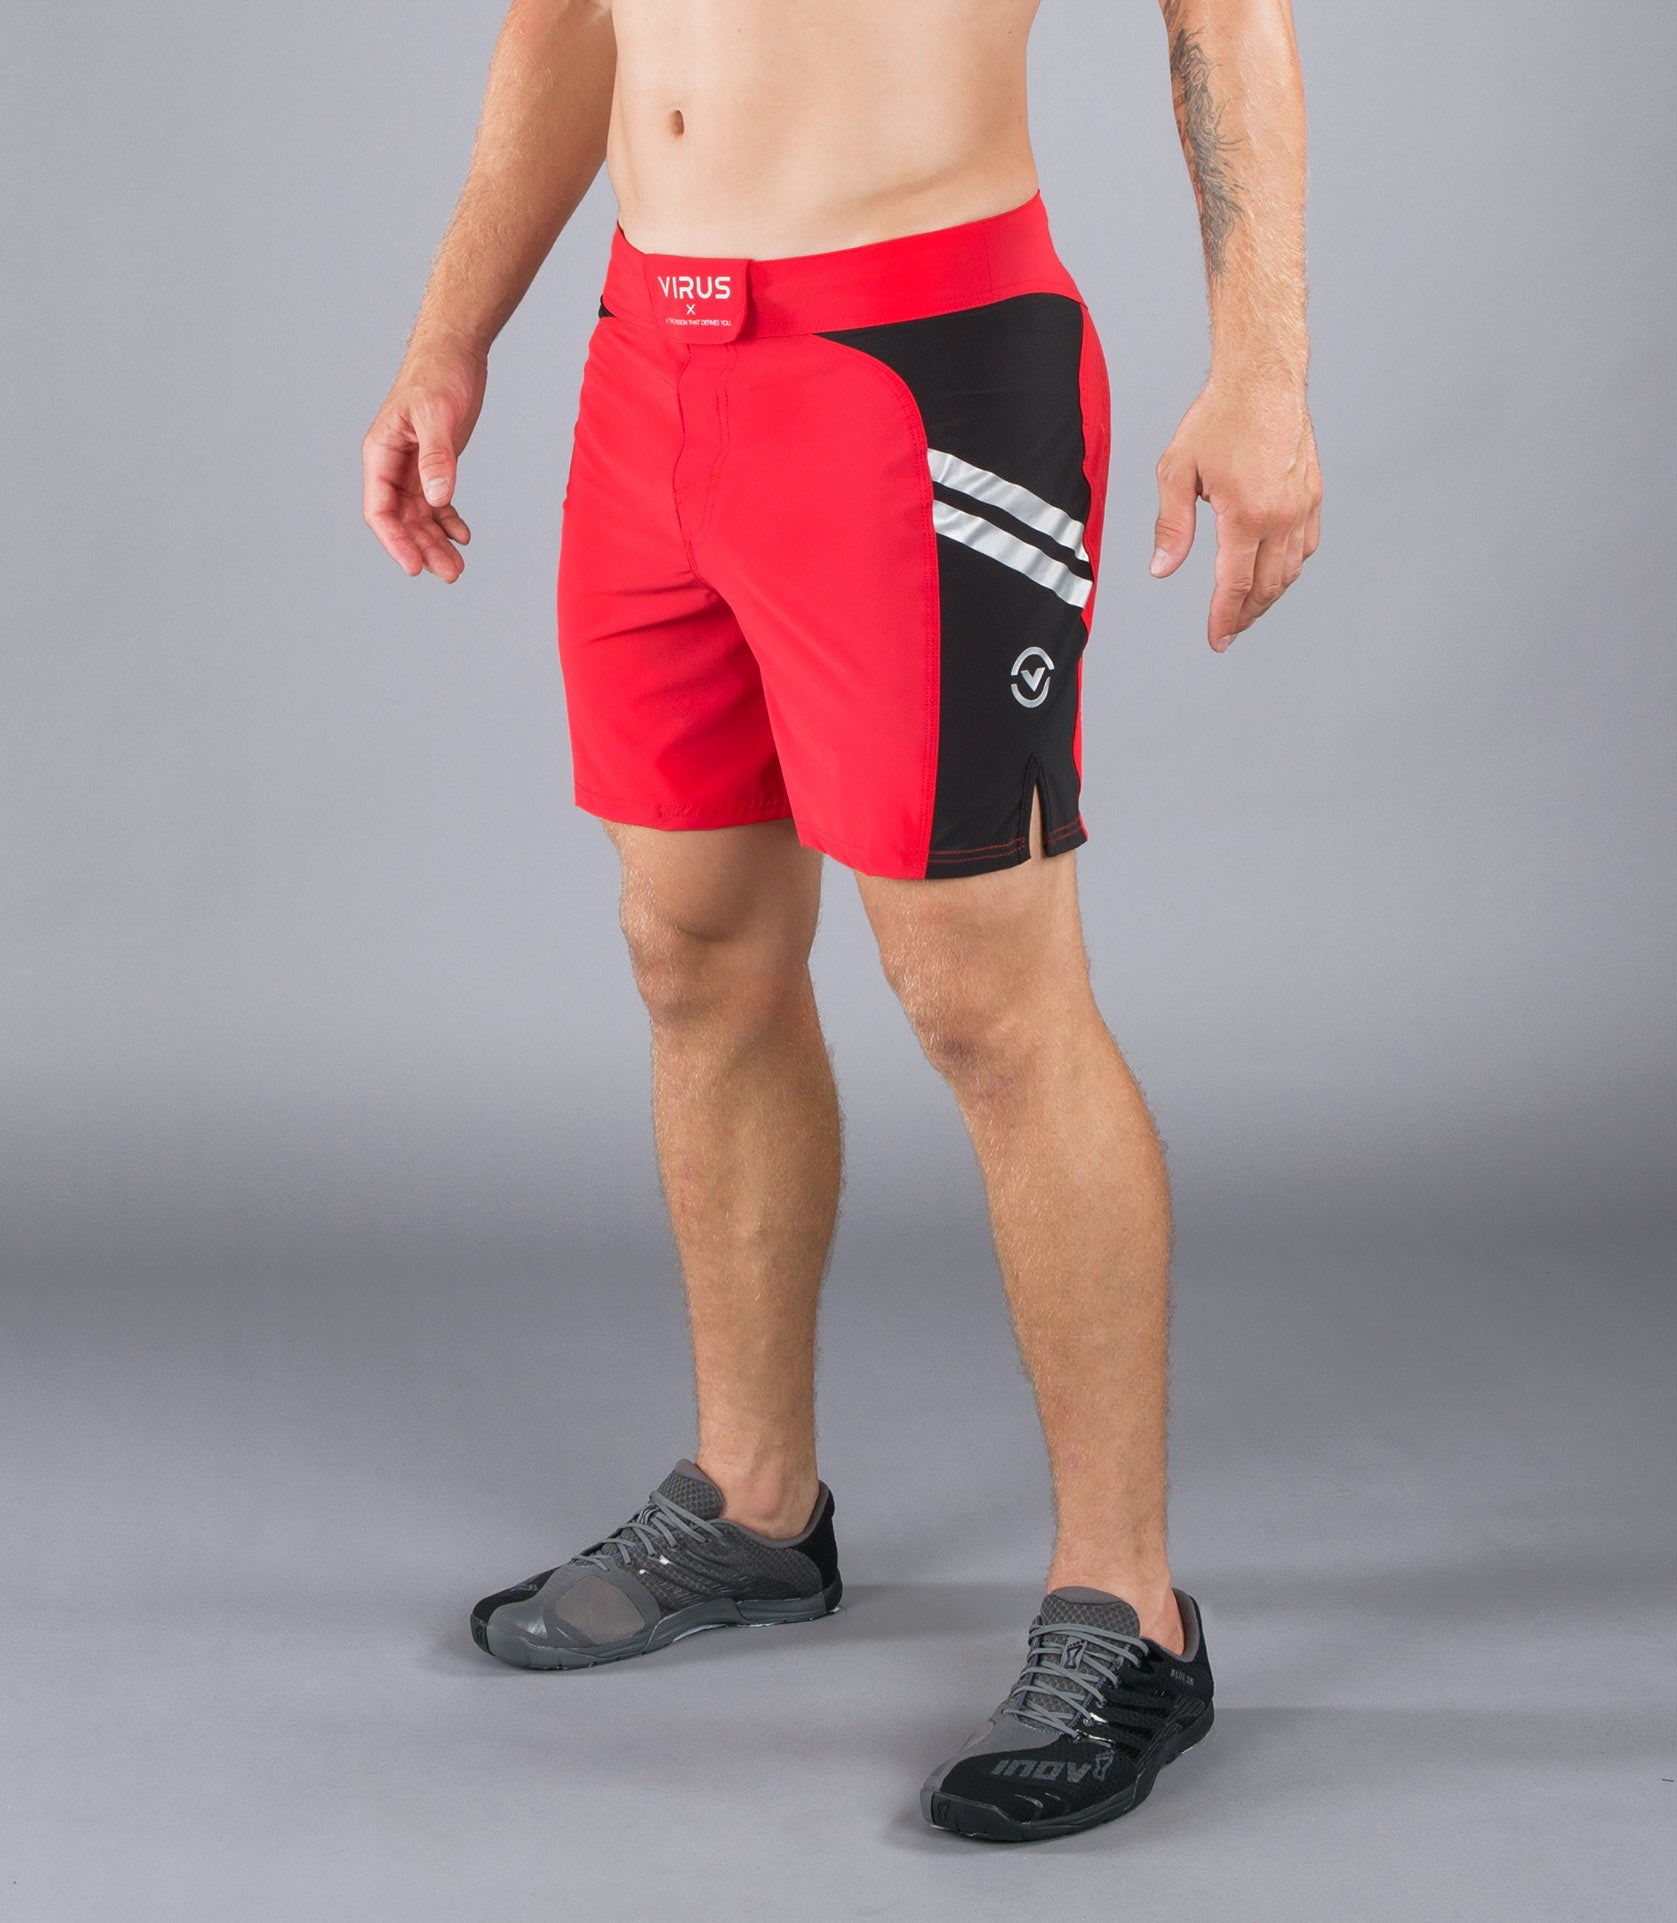 Men's Disaster Combat Shorts (ST2)- Red/Black